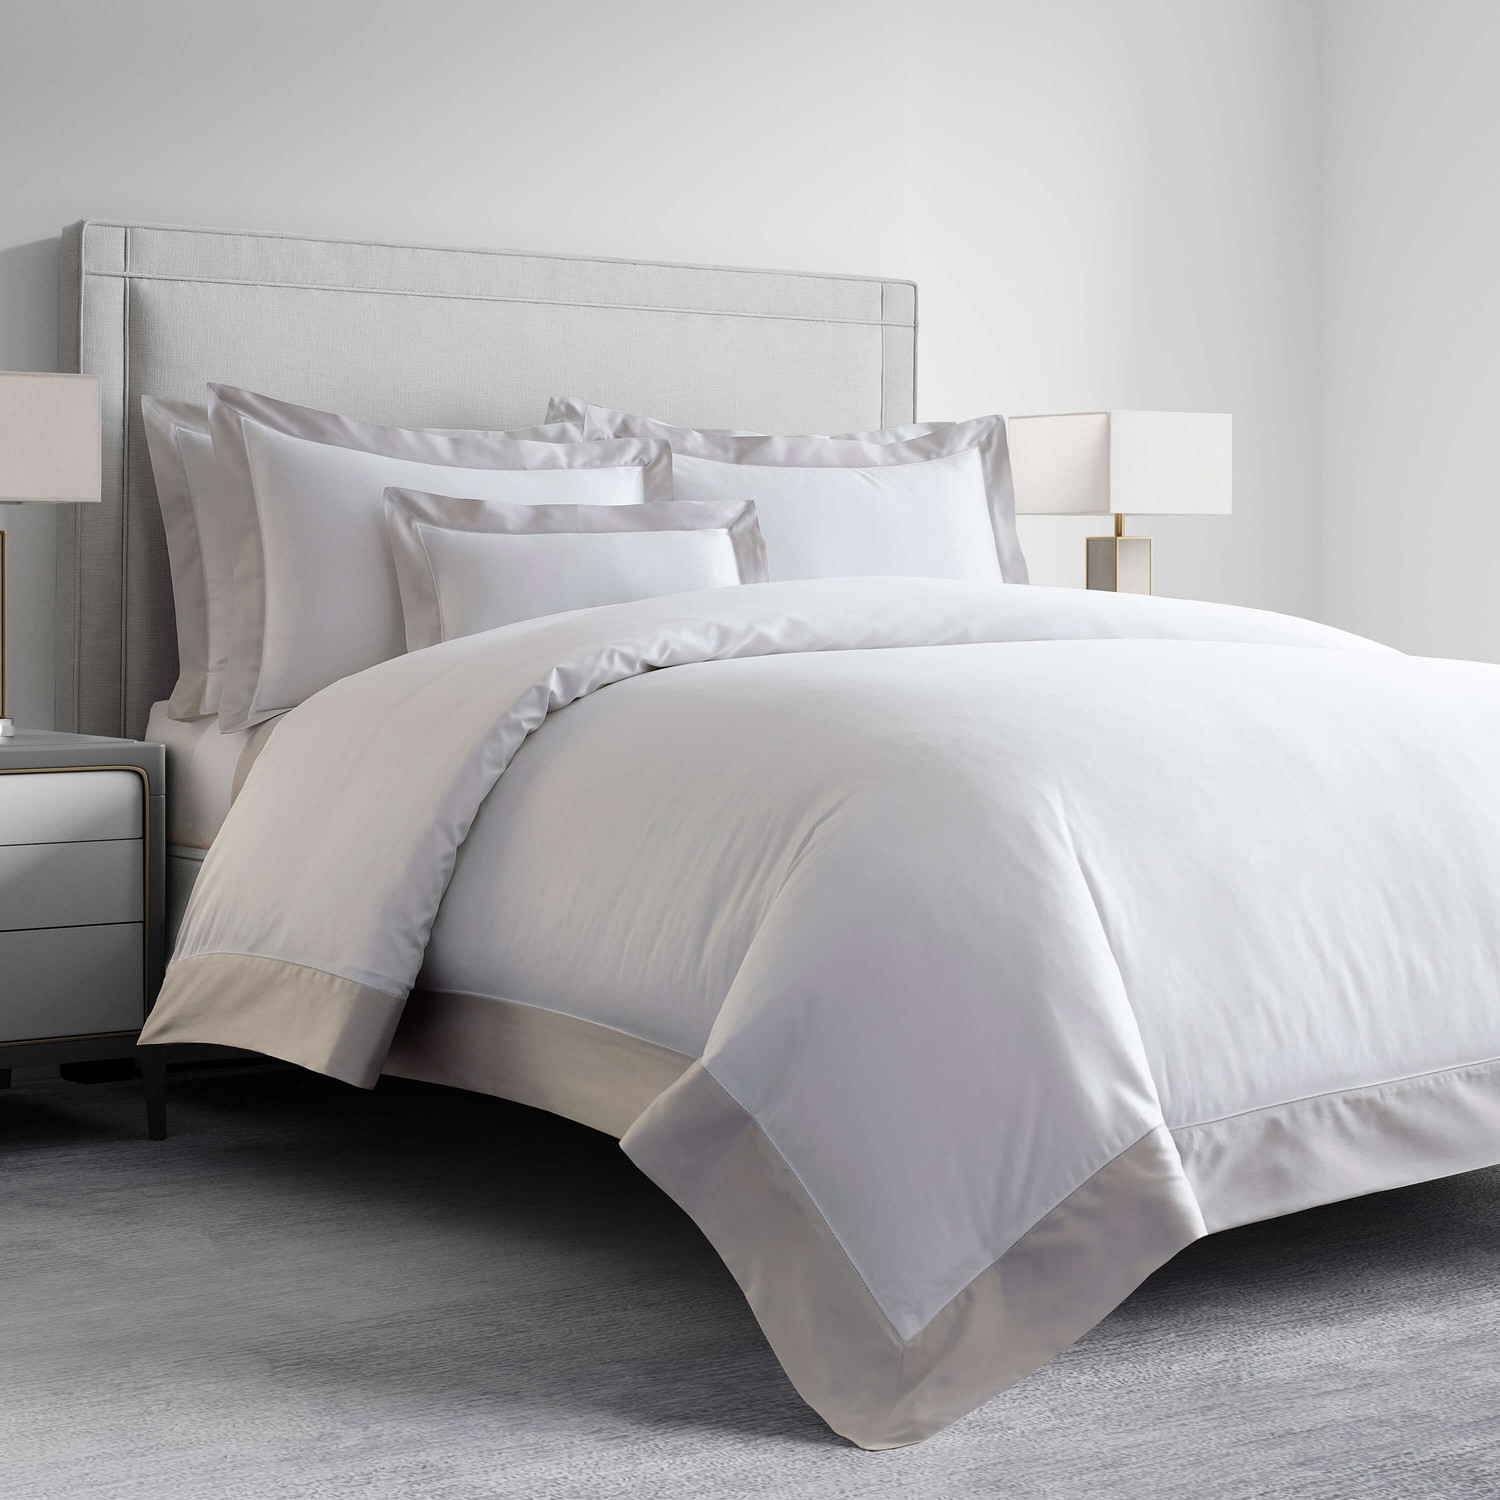 Vicenza by kassatex fine linens for Luxury hotel collection 800 tc egyptian cotton duvet cover set